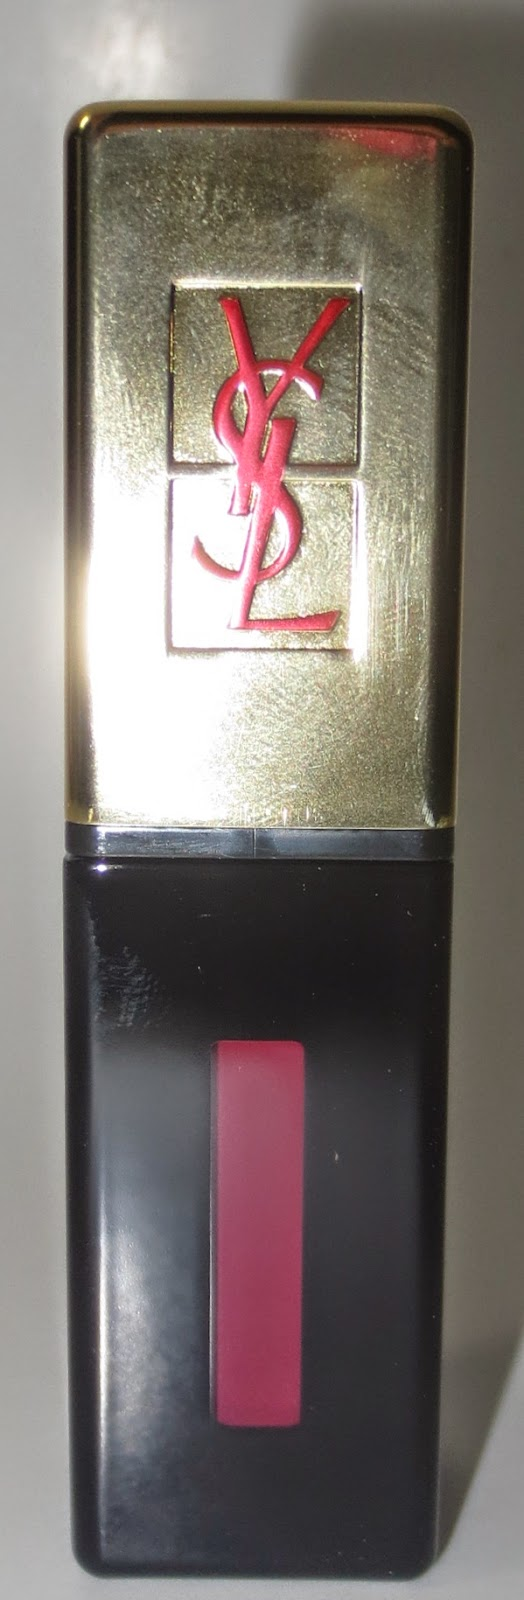 YSL Rouge Pur Couture Glossy Stain #33 Bourgogne Artistique